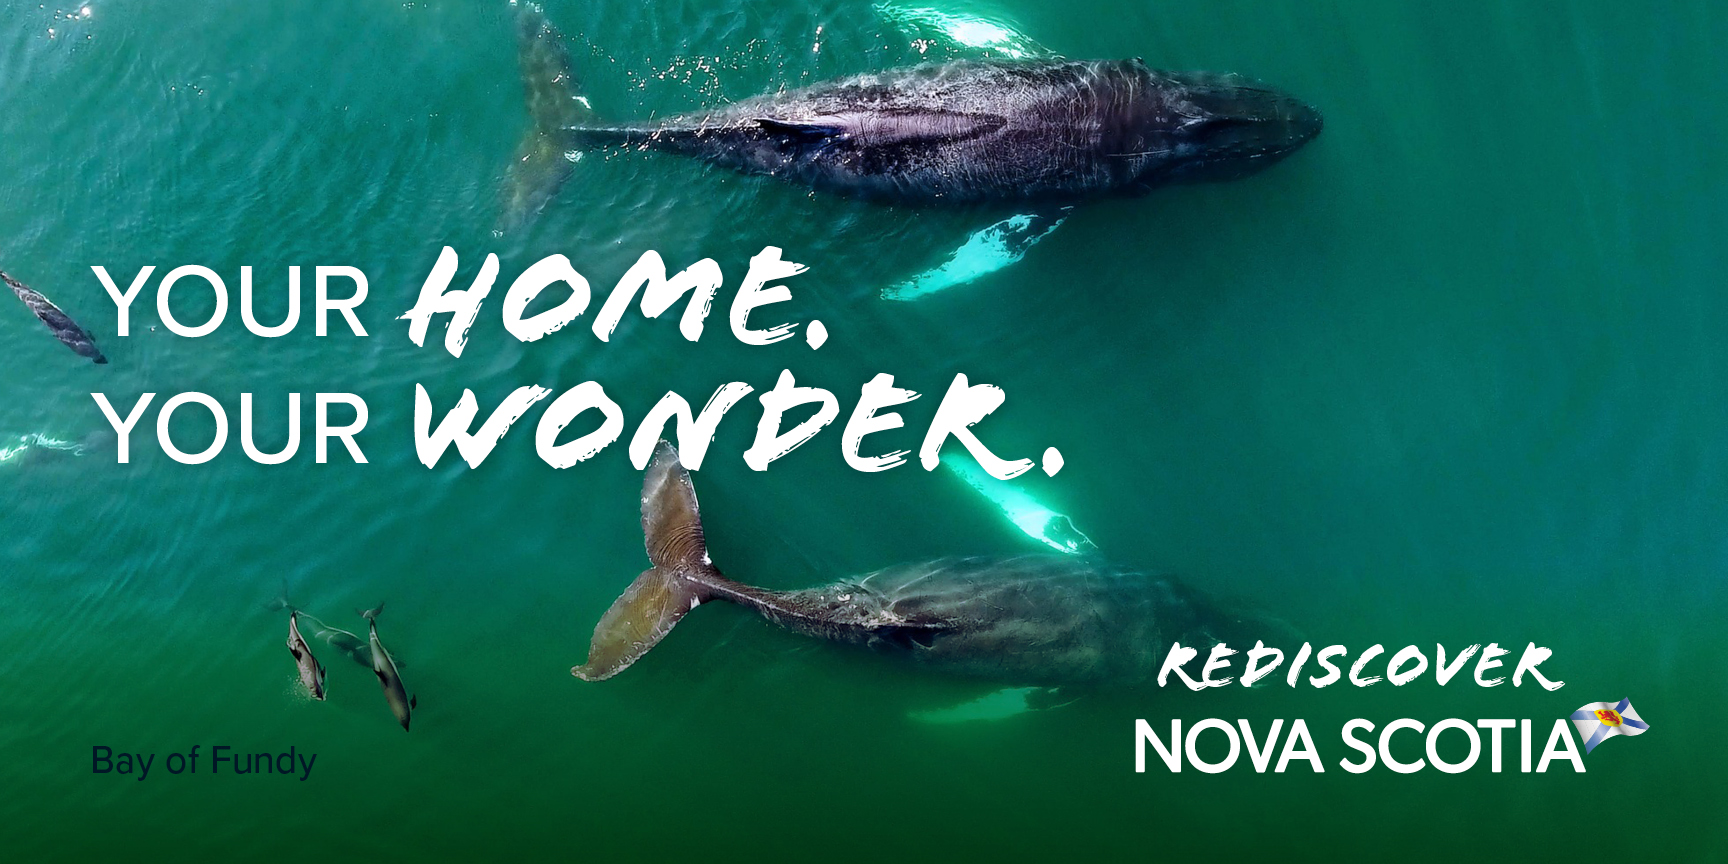 Two whales. Rediscover Nova Scotia.